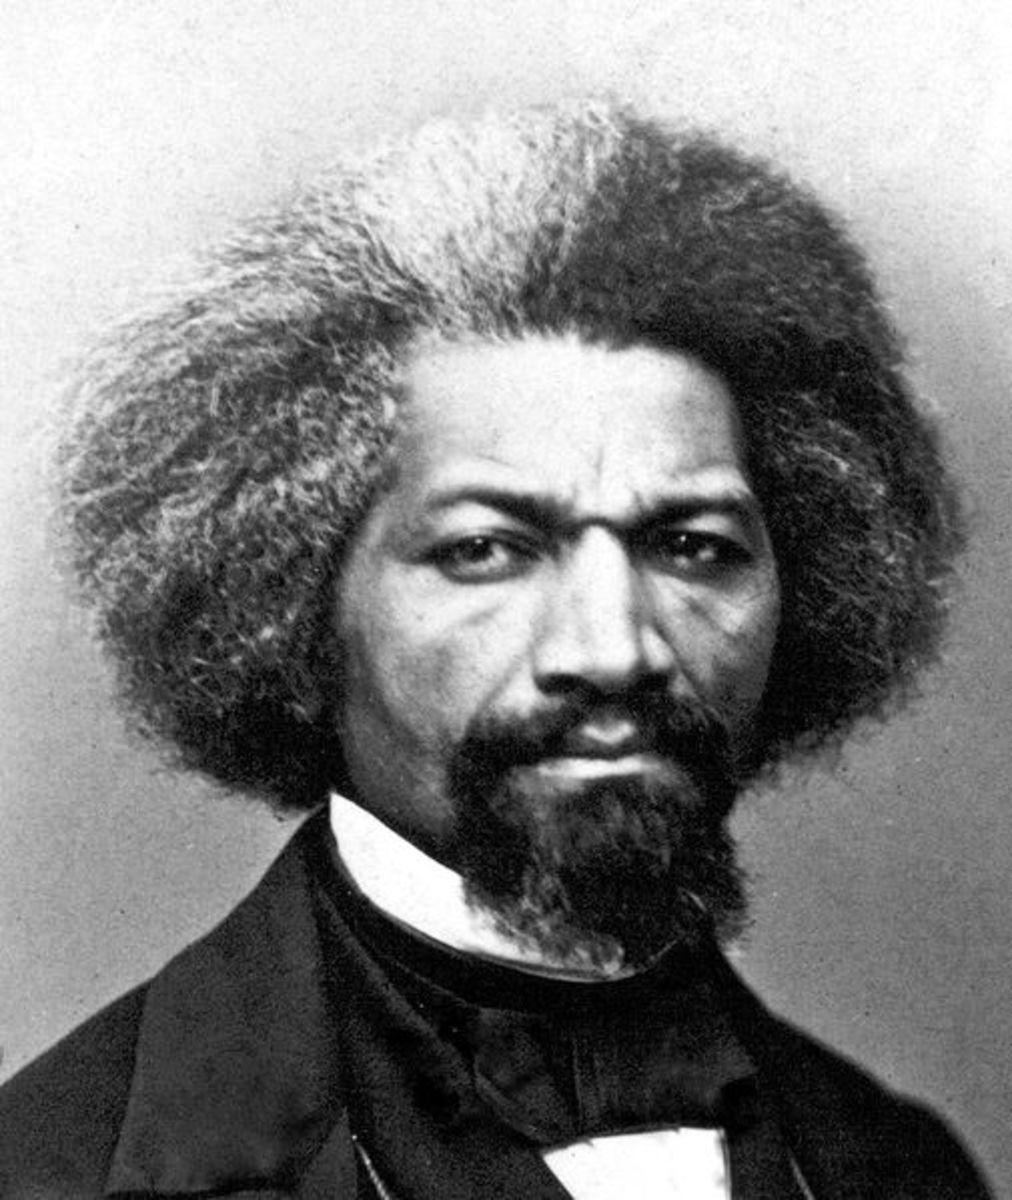 Biography of Social Reformer Frederick Douglass